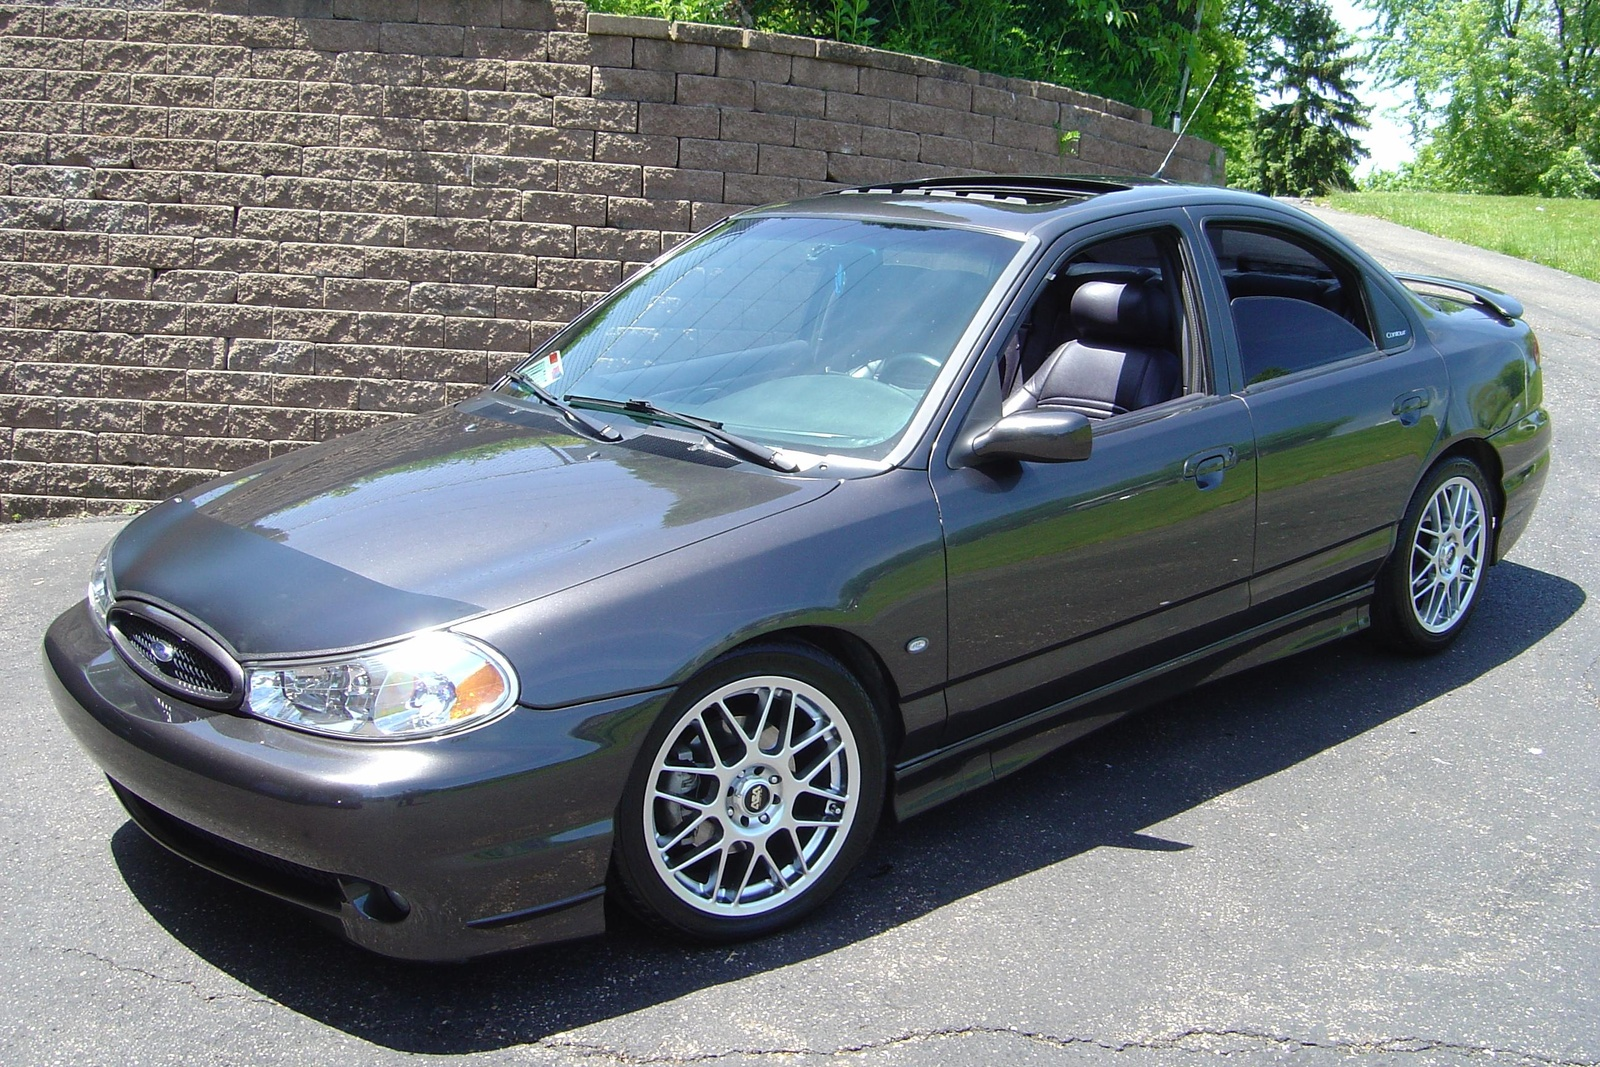 2000 Ford Contour Svt Specs New Car Release Date And Review 2018 Amanda Felicia